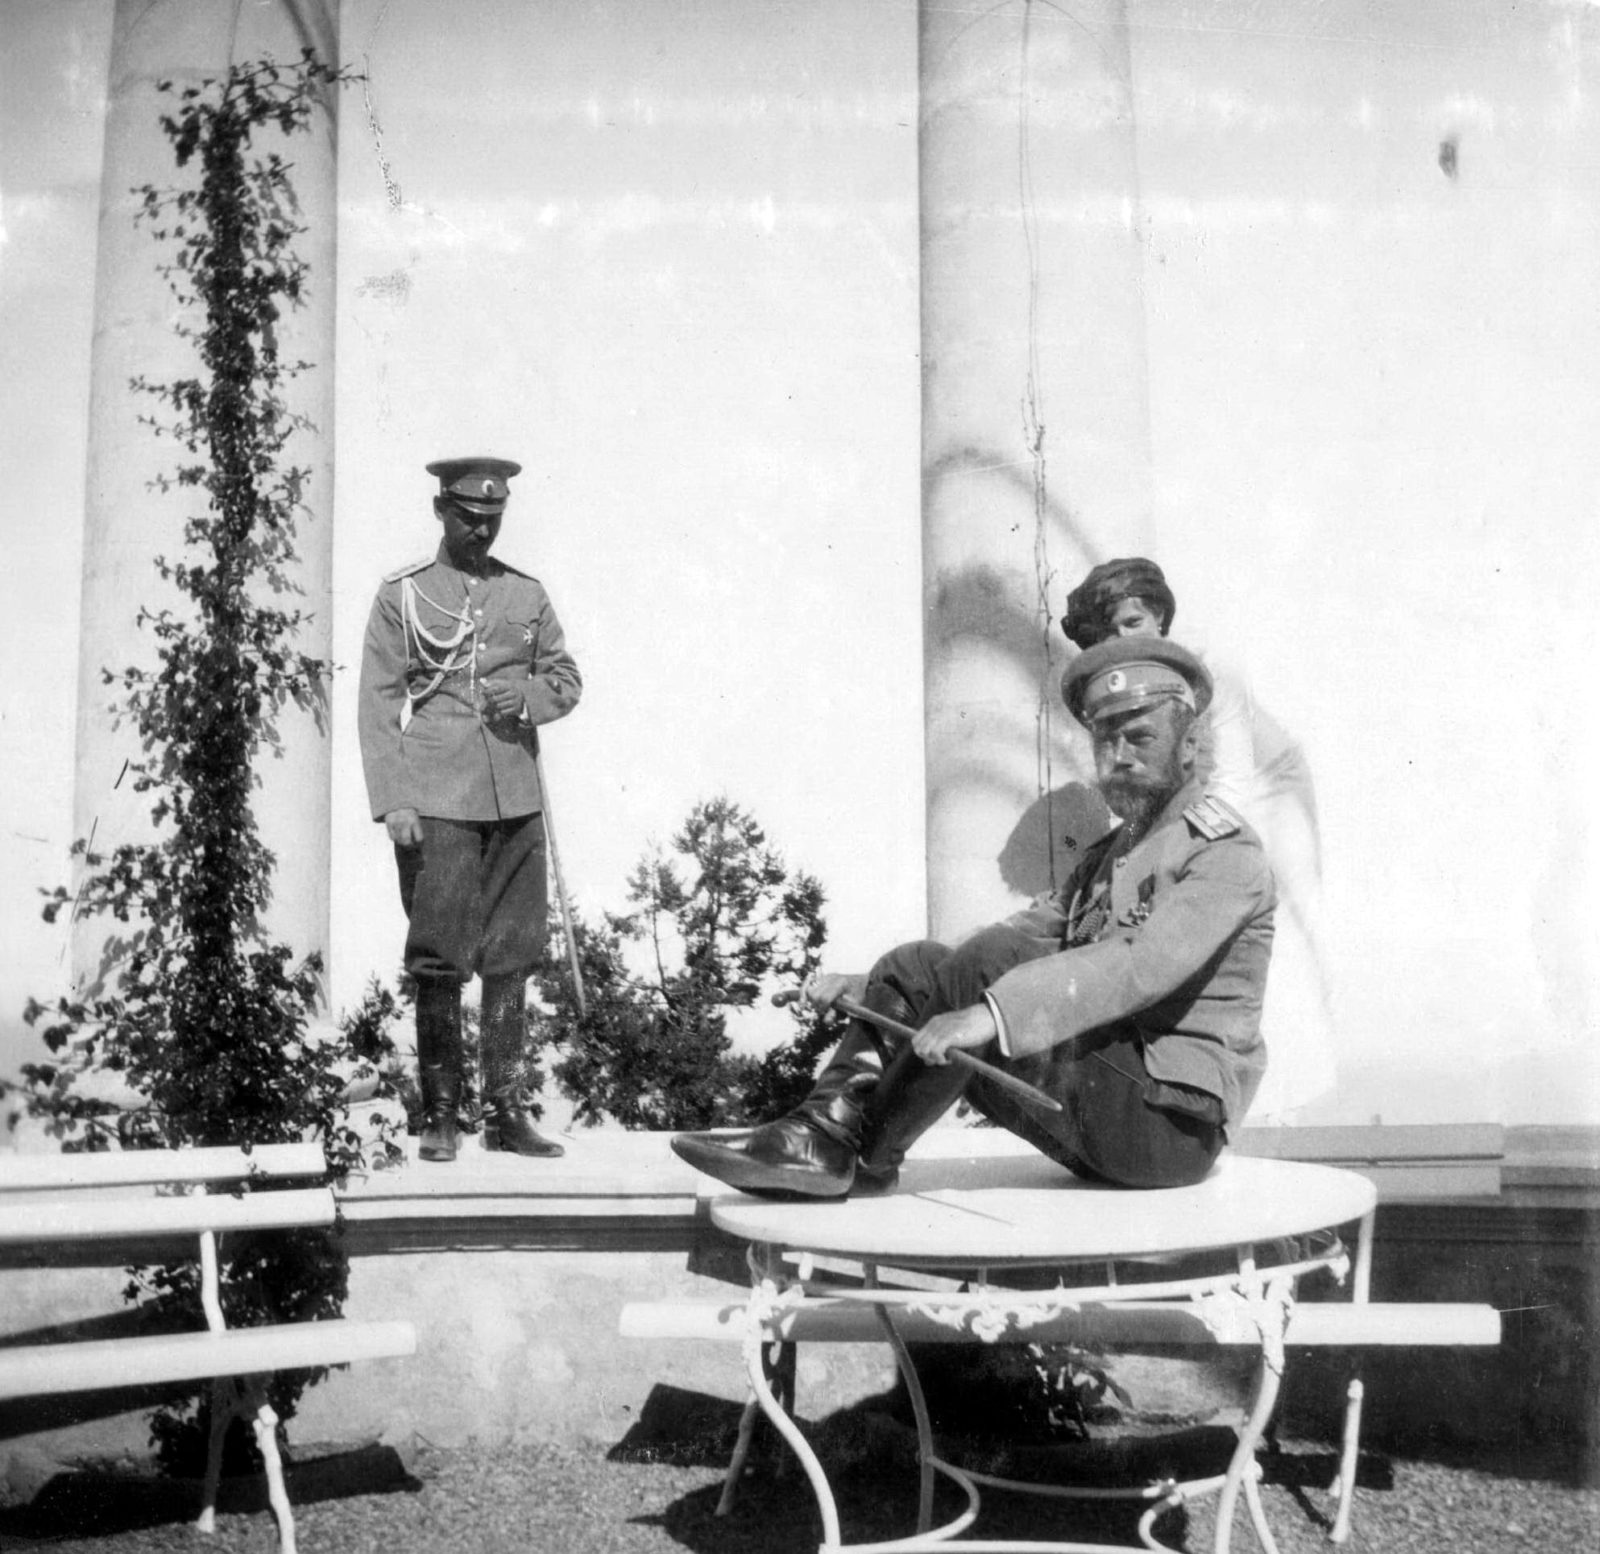 His Imperial Majesty the Emperor Nicholas Alexandrovich (Nicholas II) during the rest. Livadia Crimea. 1914 year.